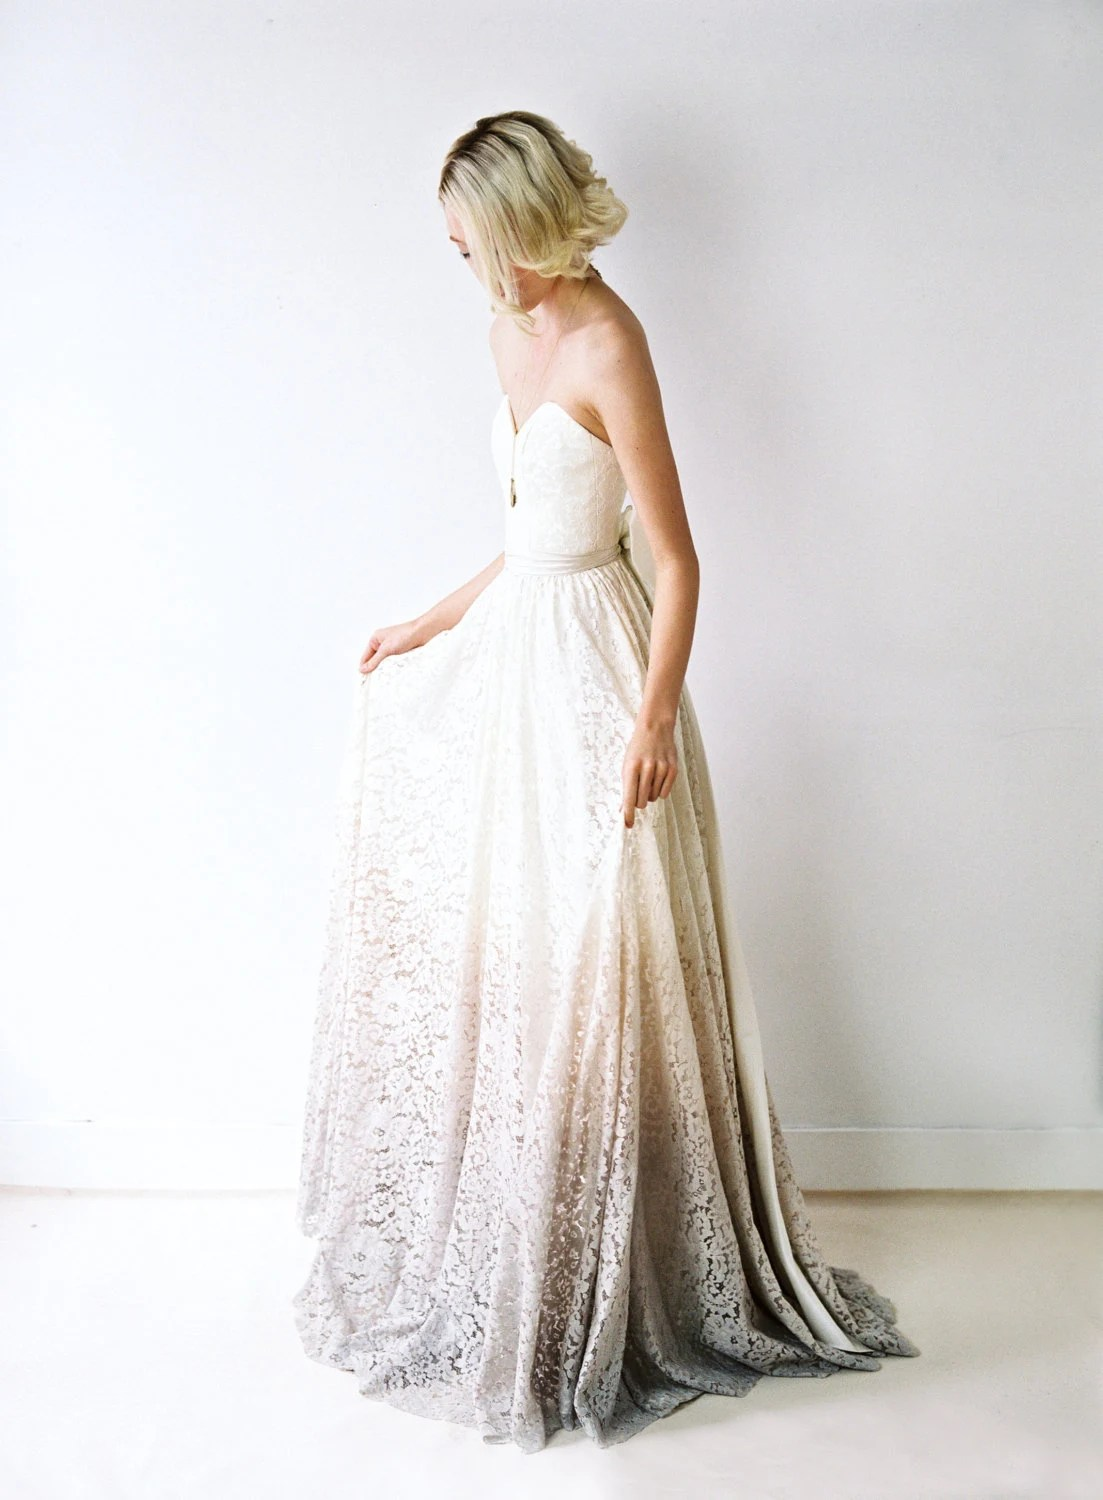 taylor a dip dyed lace wedding gown tie dye wedding dress zoom